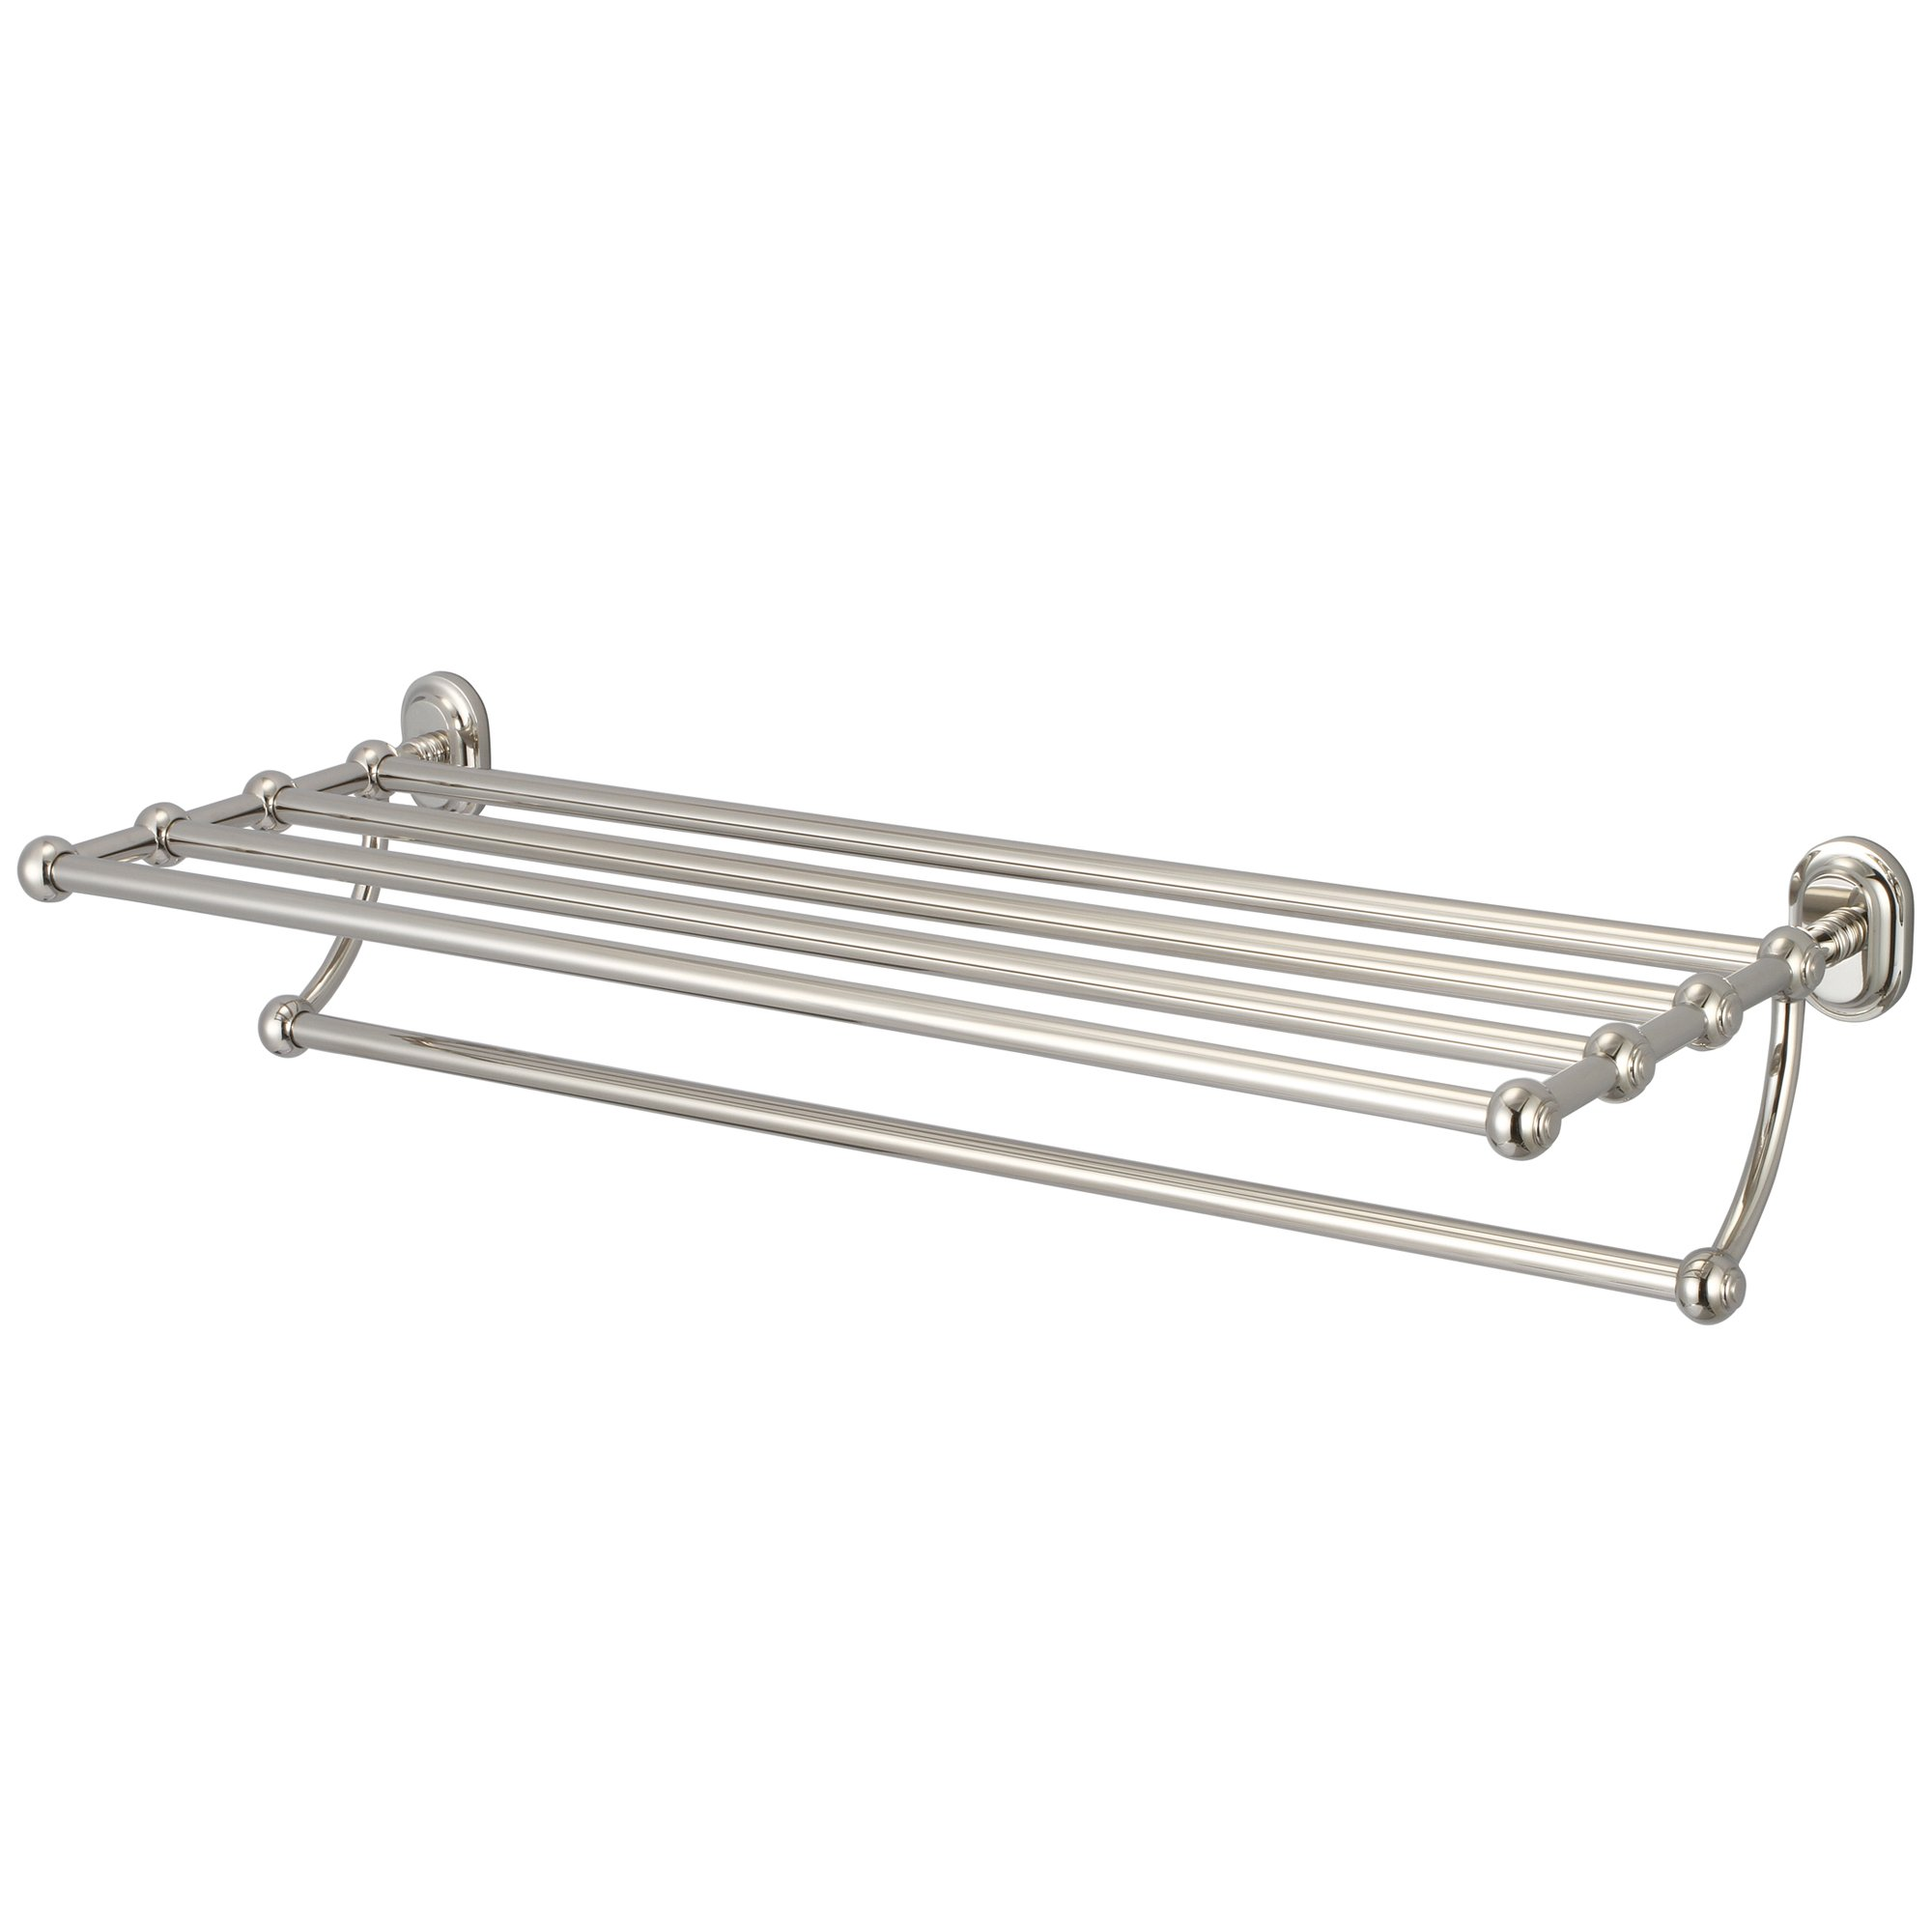 Water Creation BA-0001-05 Multi-Purpose Bath Train Rack As Restoration Hardware for Classic Bathroom